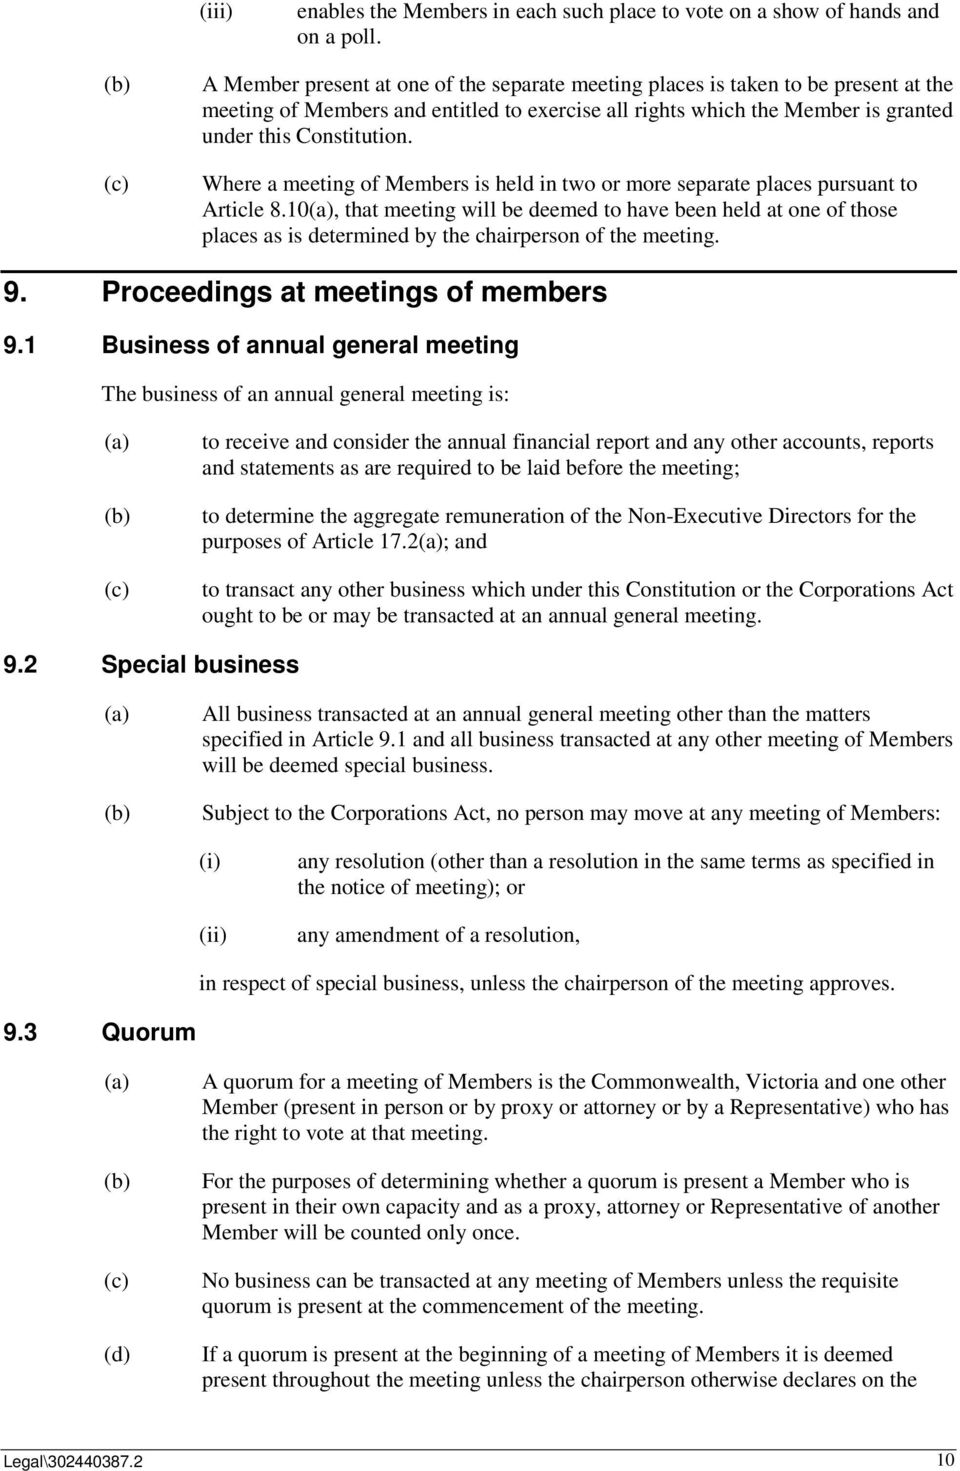 Where a meeting of Members is held in two or more separate places pursuant to Article 8.